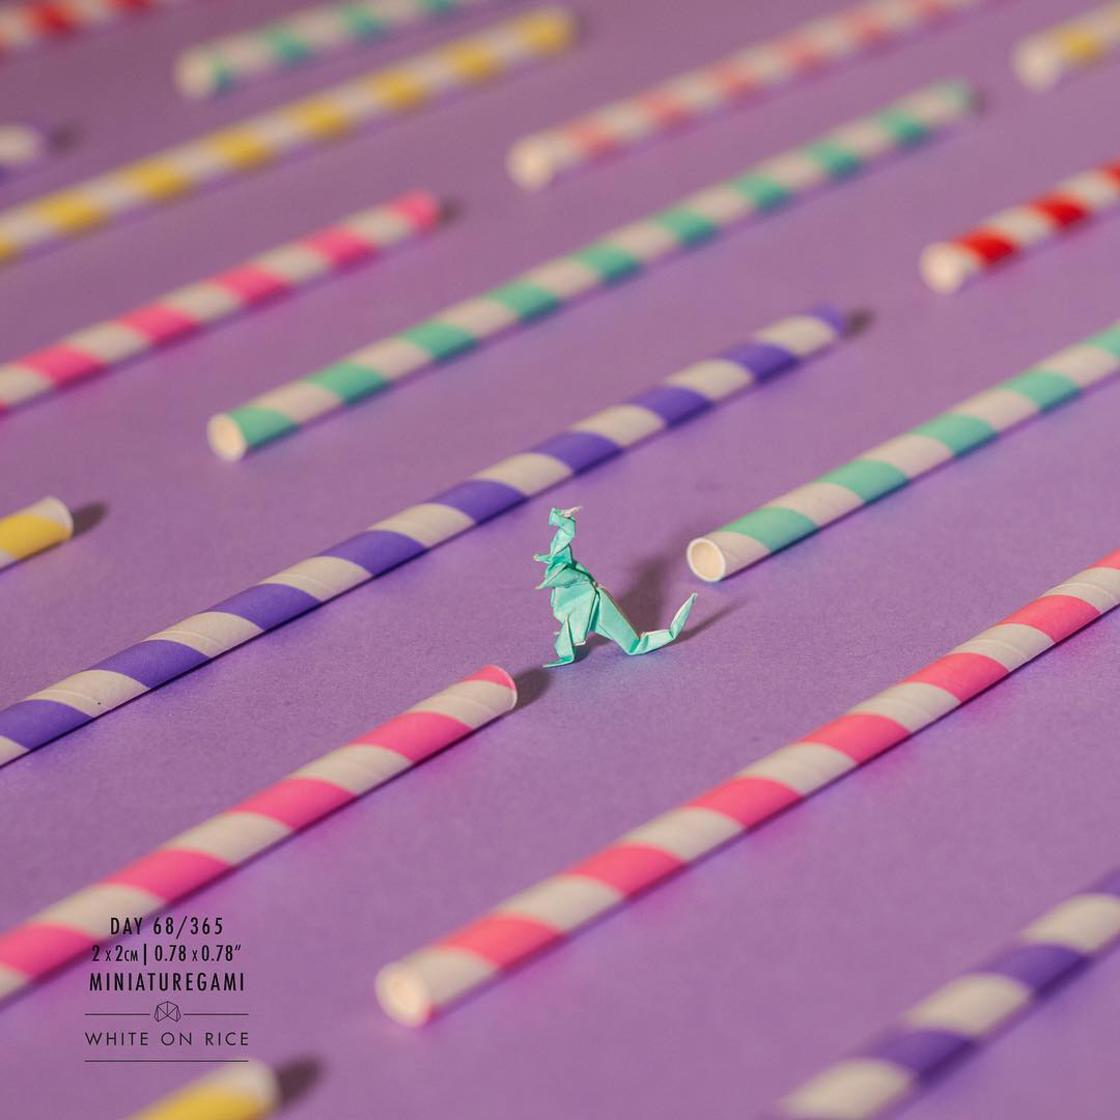 Miniature Origami – This creative is folding a tiny origami every day